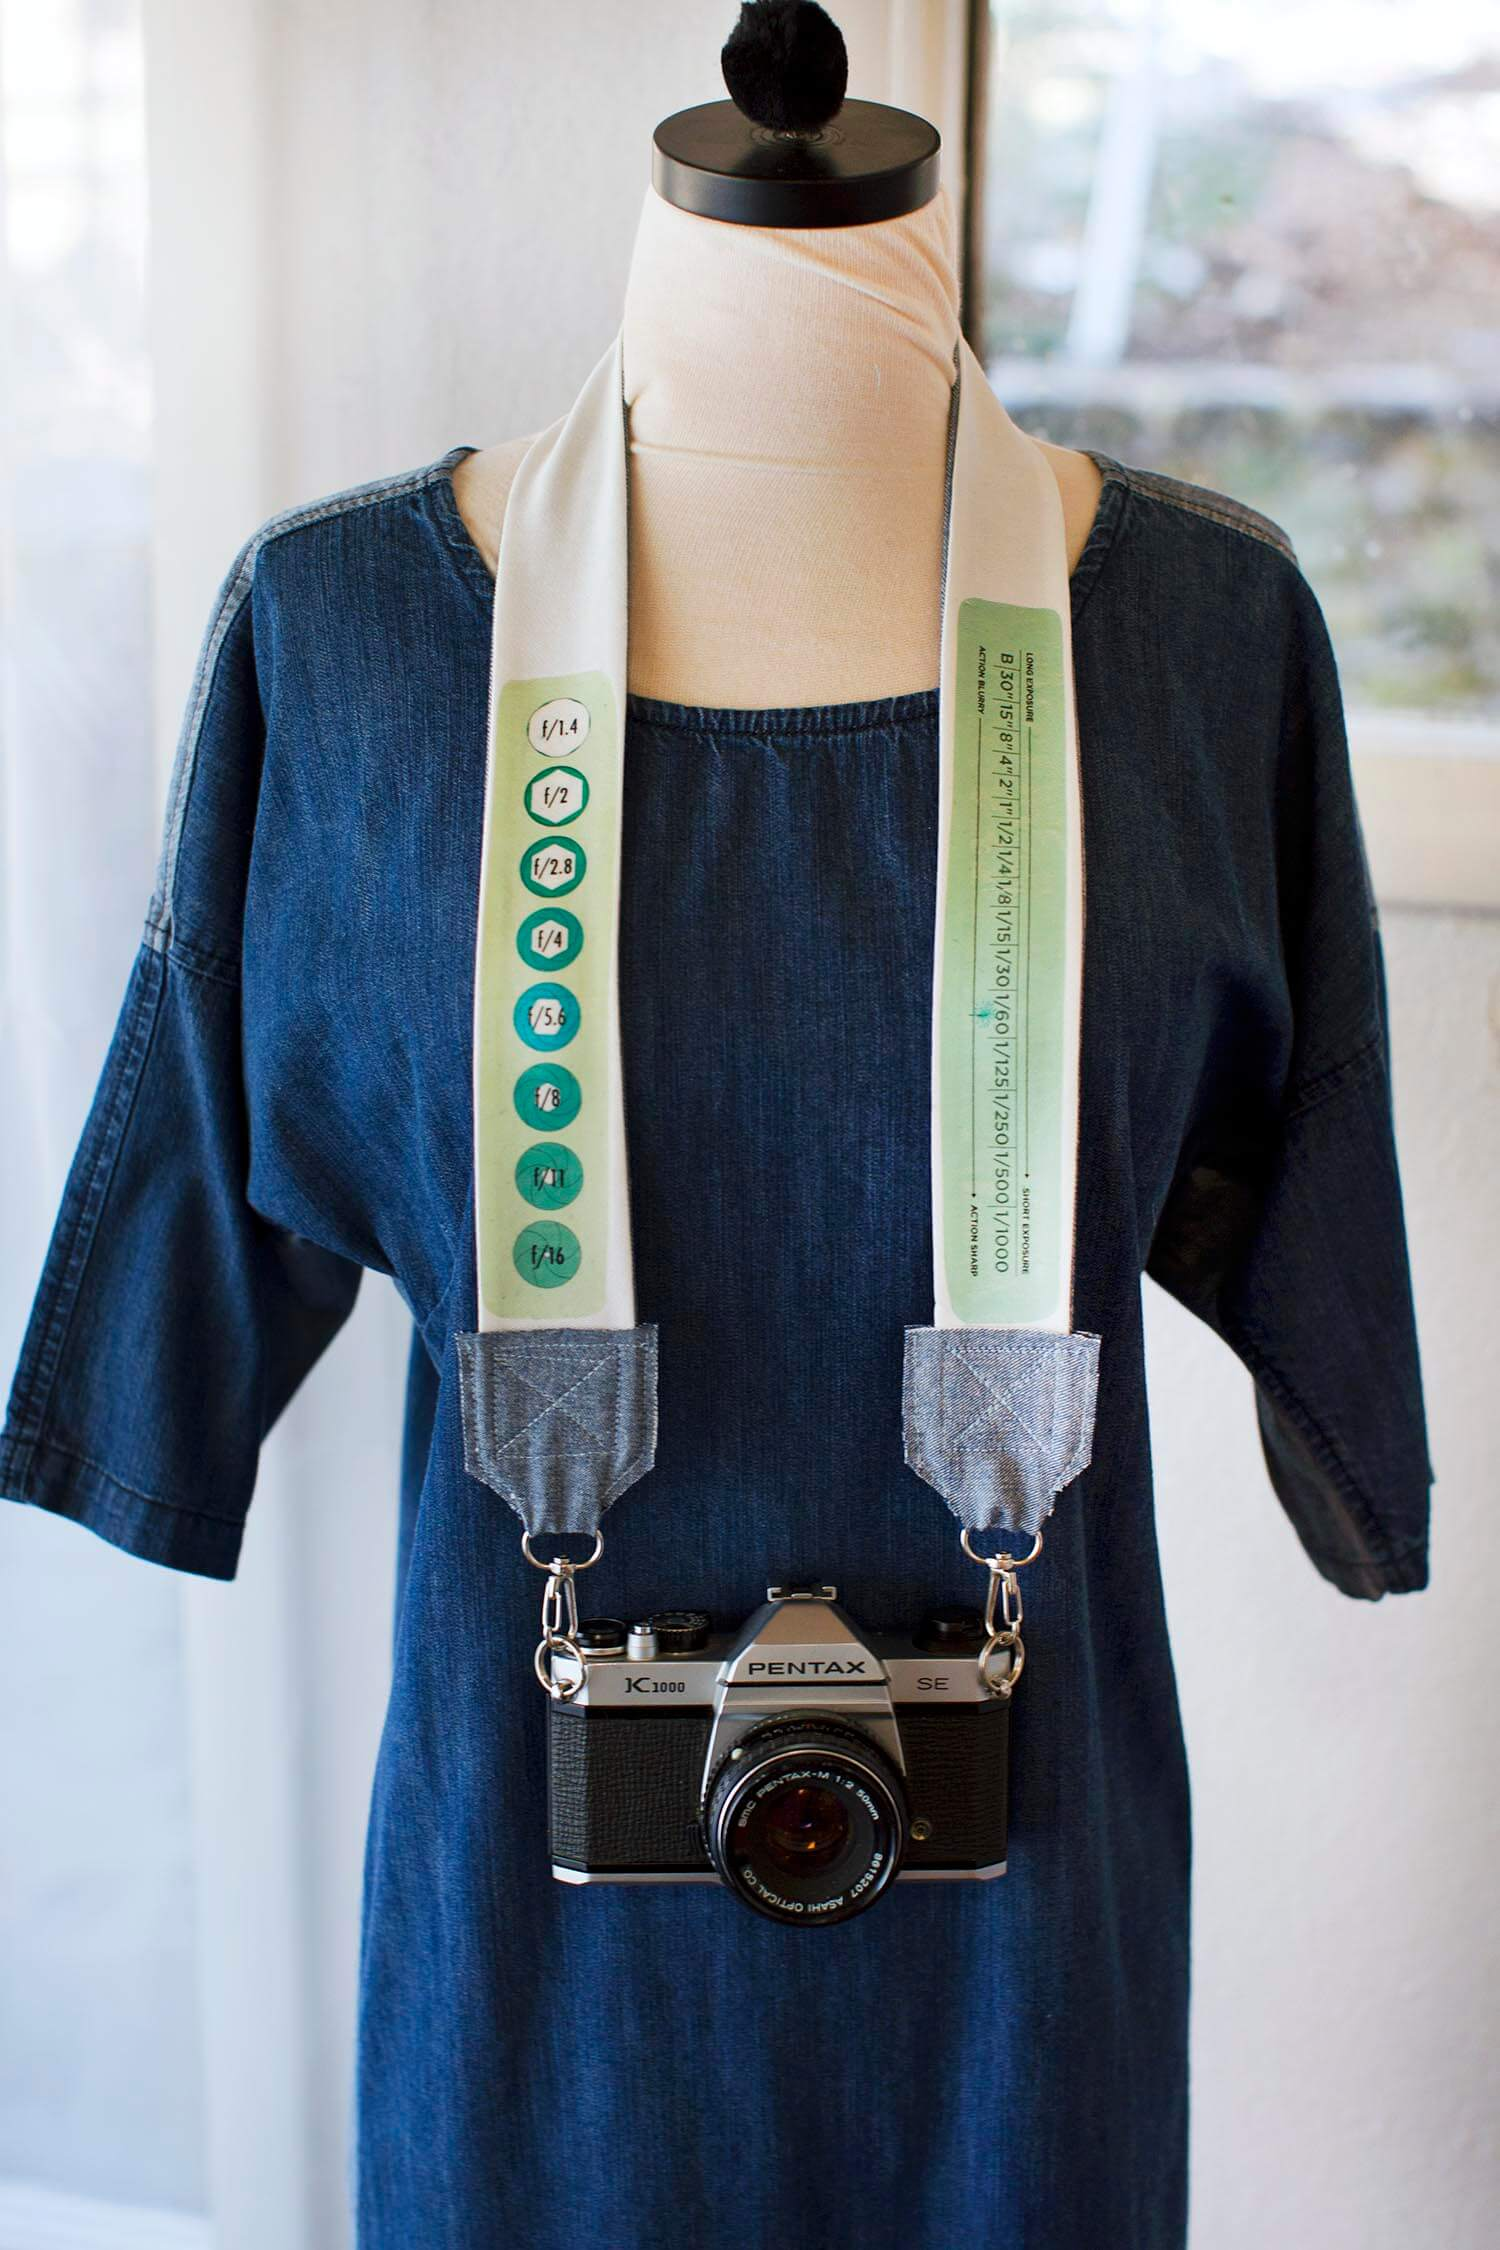 How to make your own camera strap